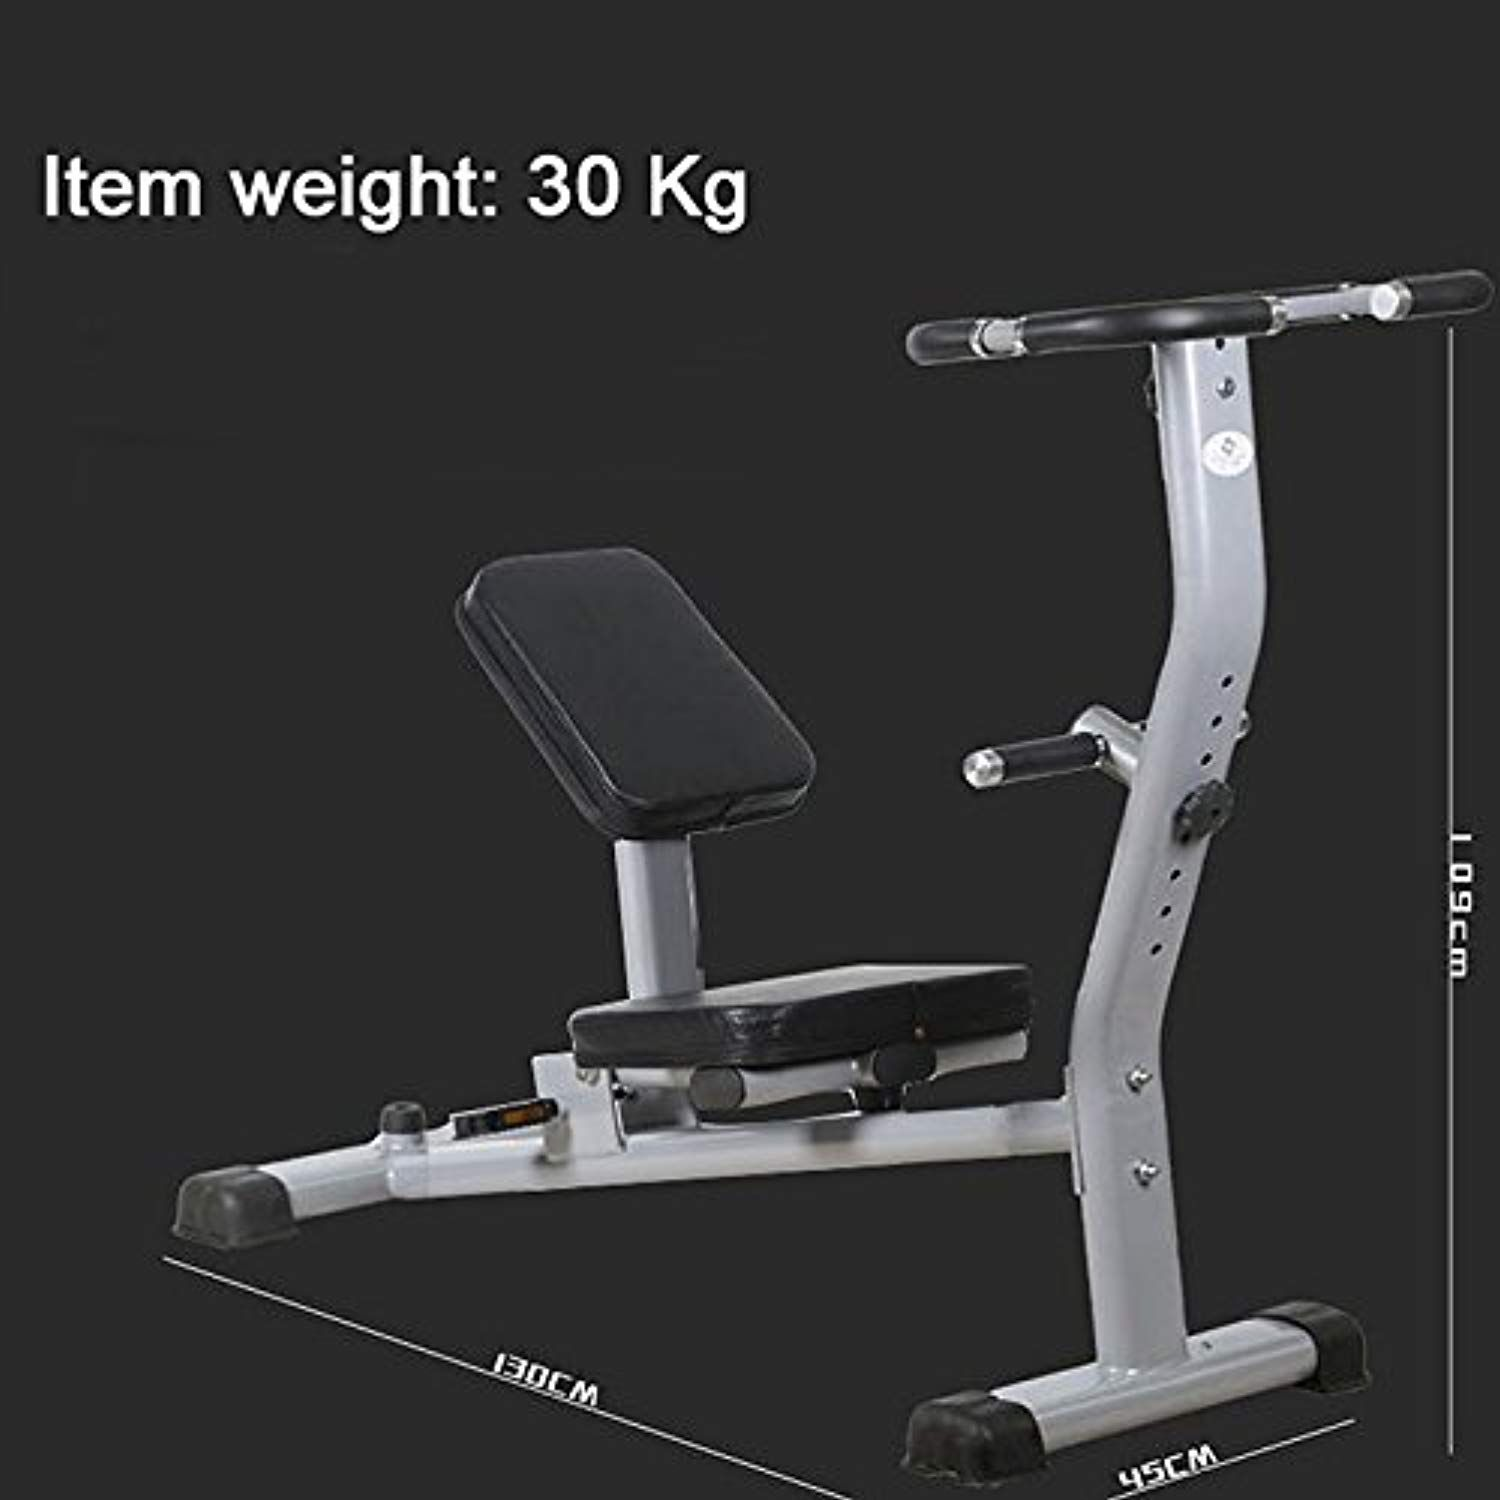 Home Gyms Fitness Commercial Stretch Machine Fitness Equipment Strengthtraining 021359 Read More Reviews Of T At Home Gym No Equipment Workout Gym Workouts